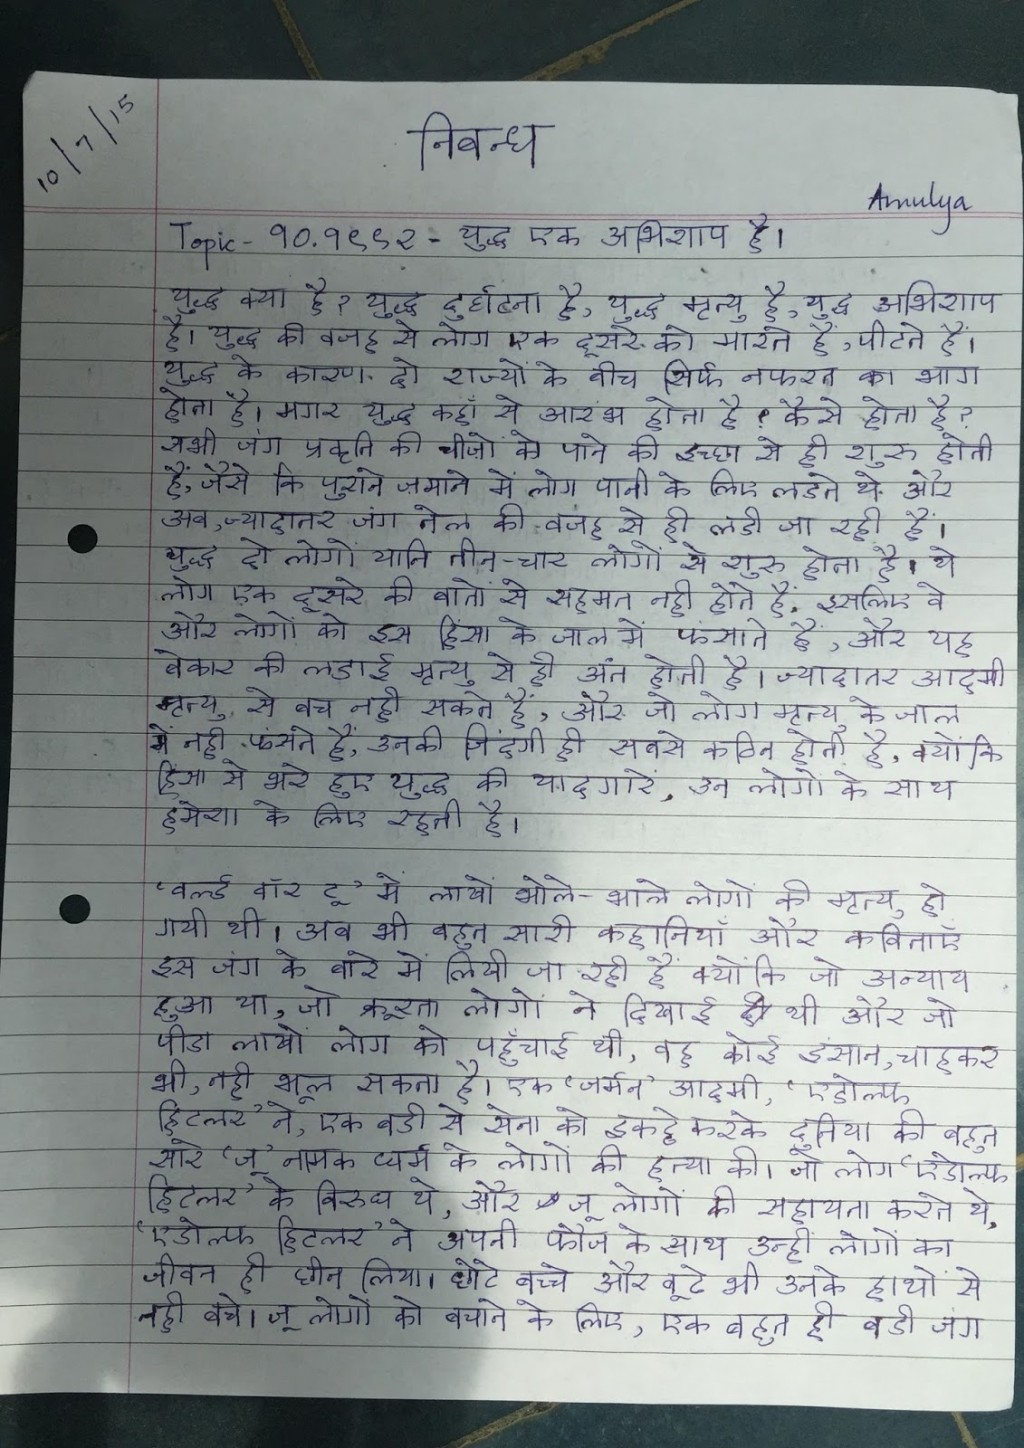 015 My Country Essay In Hindi Page201 Phenomenal 10 Lines Is Great Large